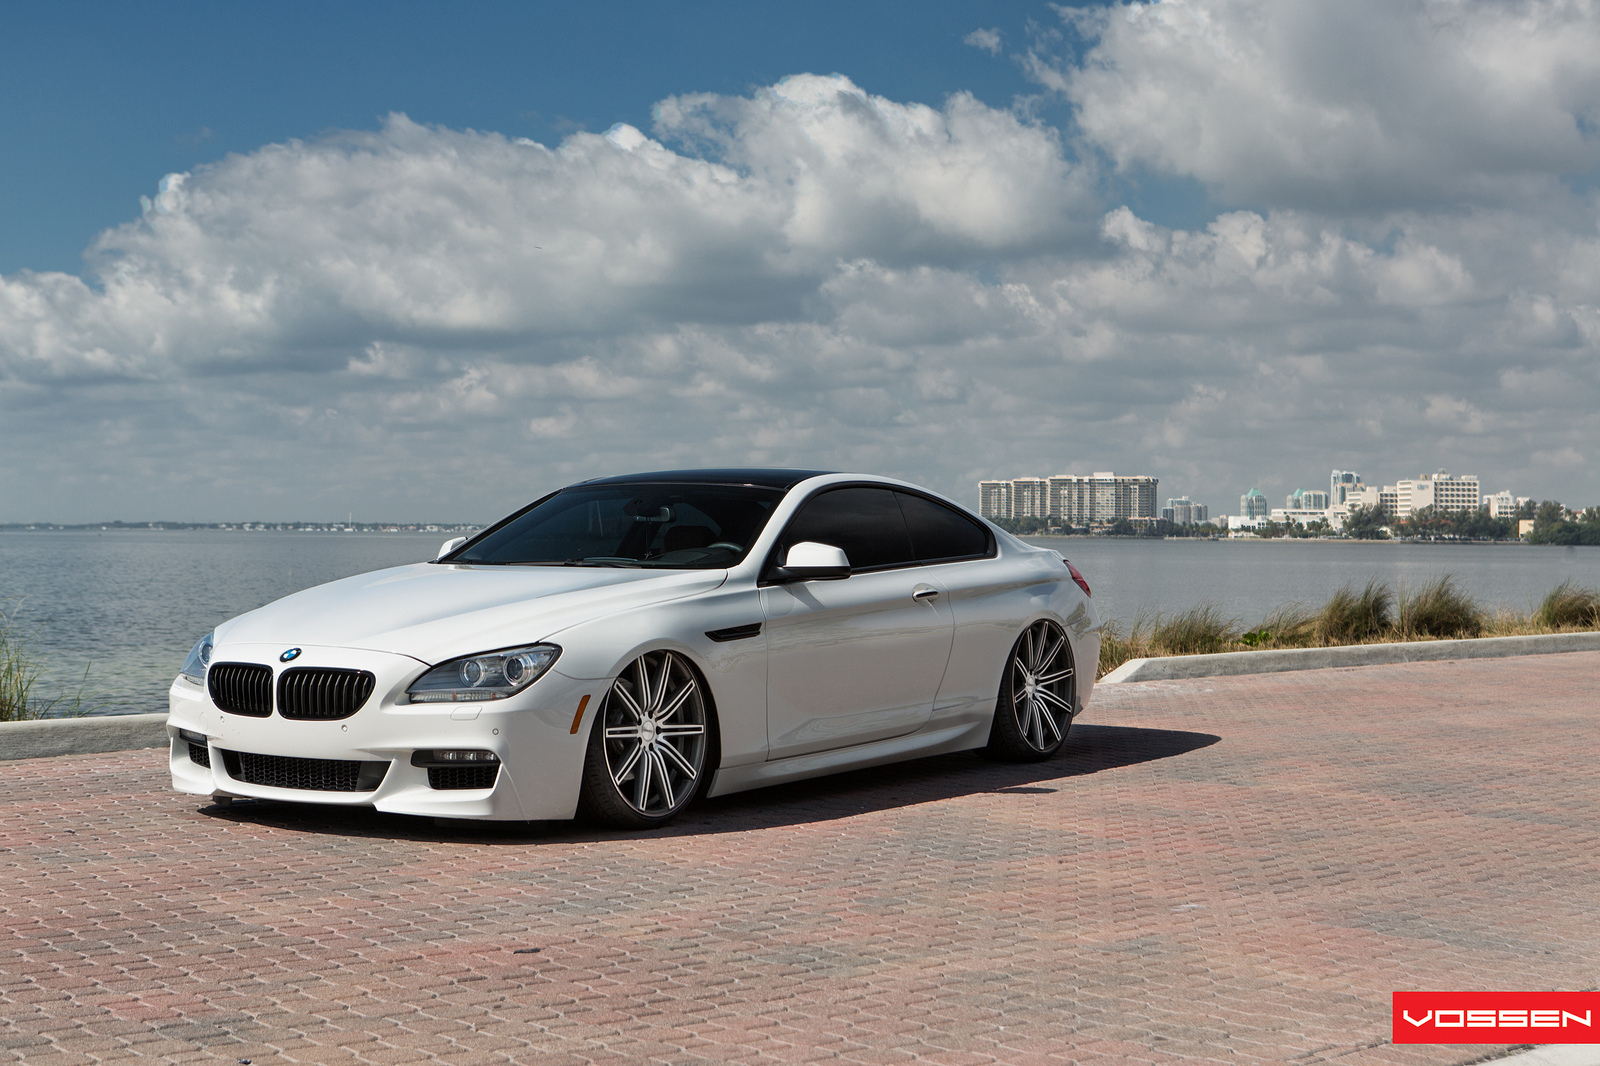 Bmw 6 Series On Vossen Cv4 Wheels Is Almost A Low Rider